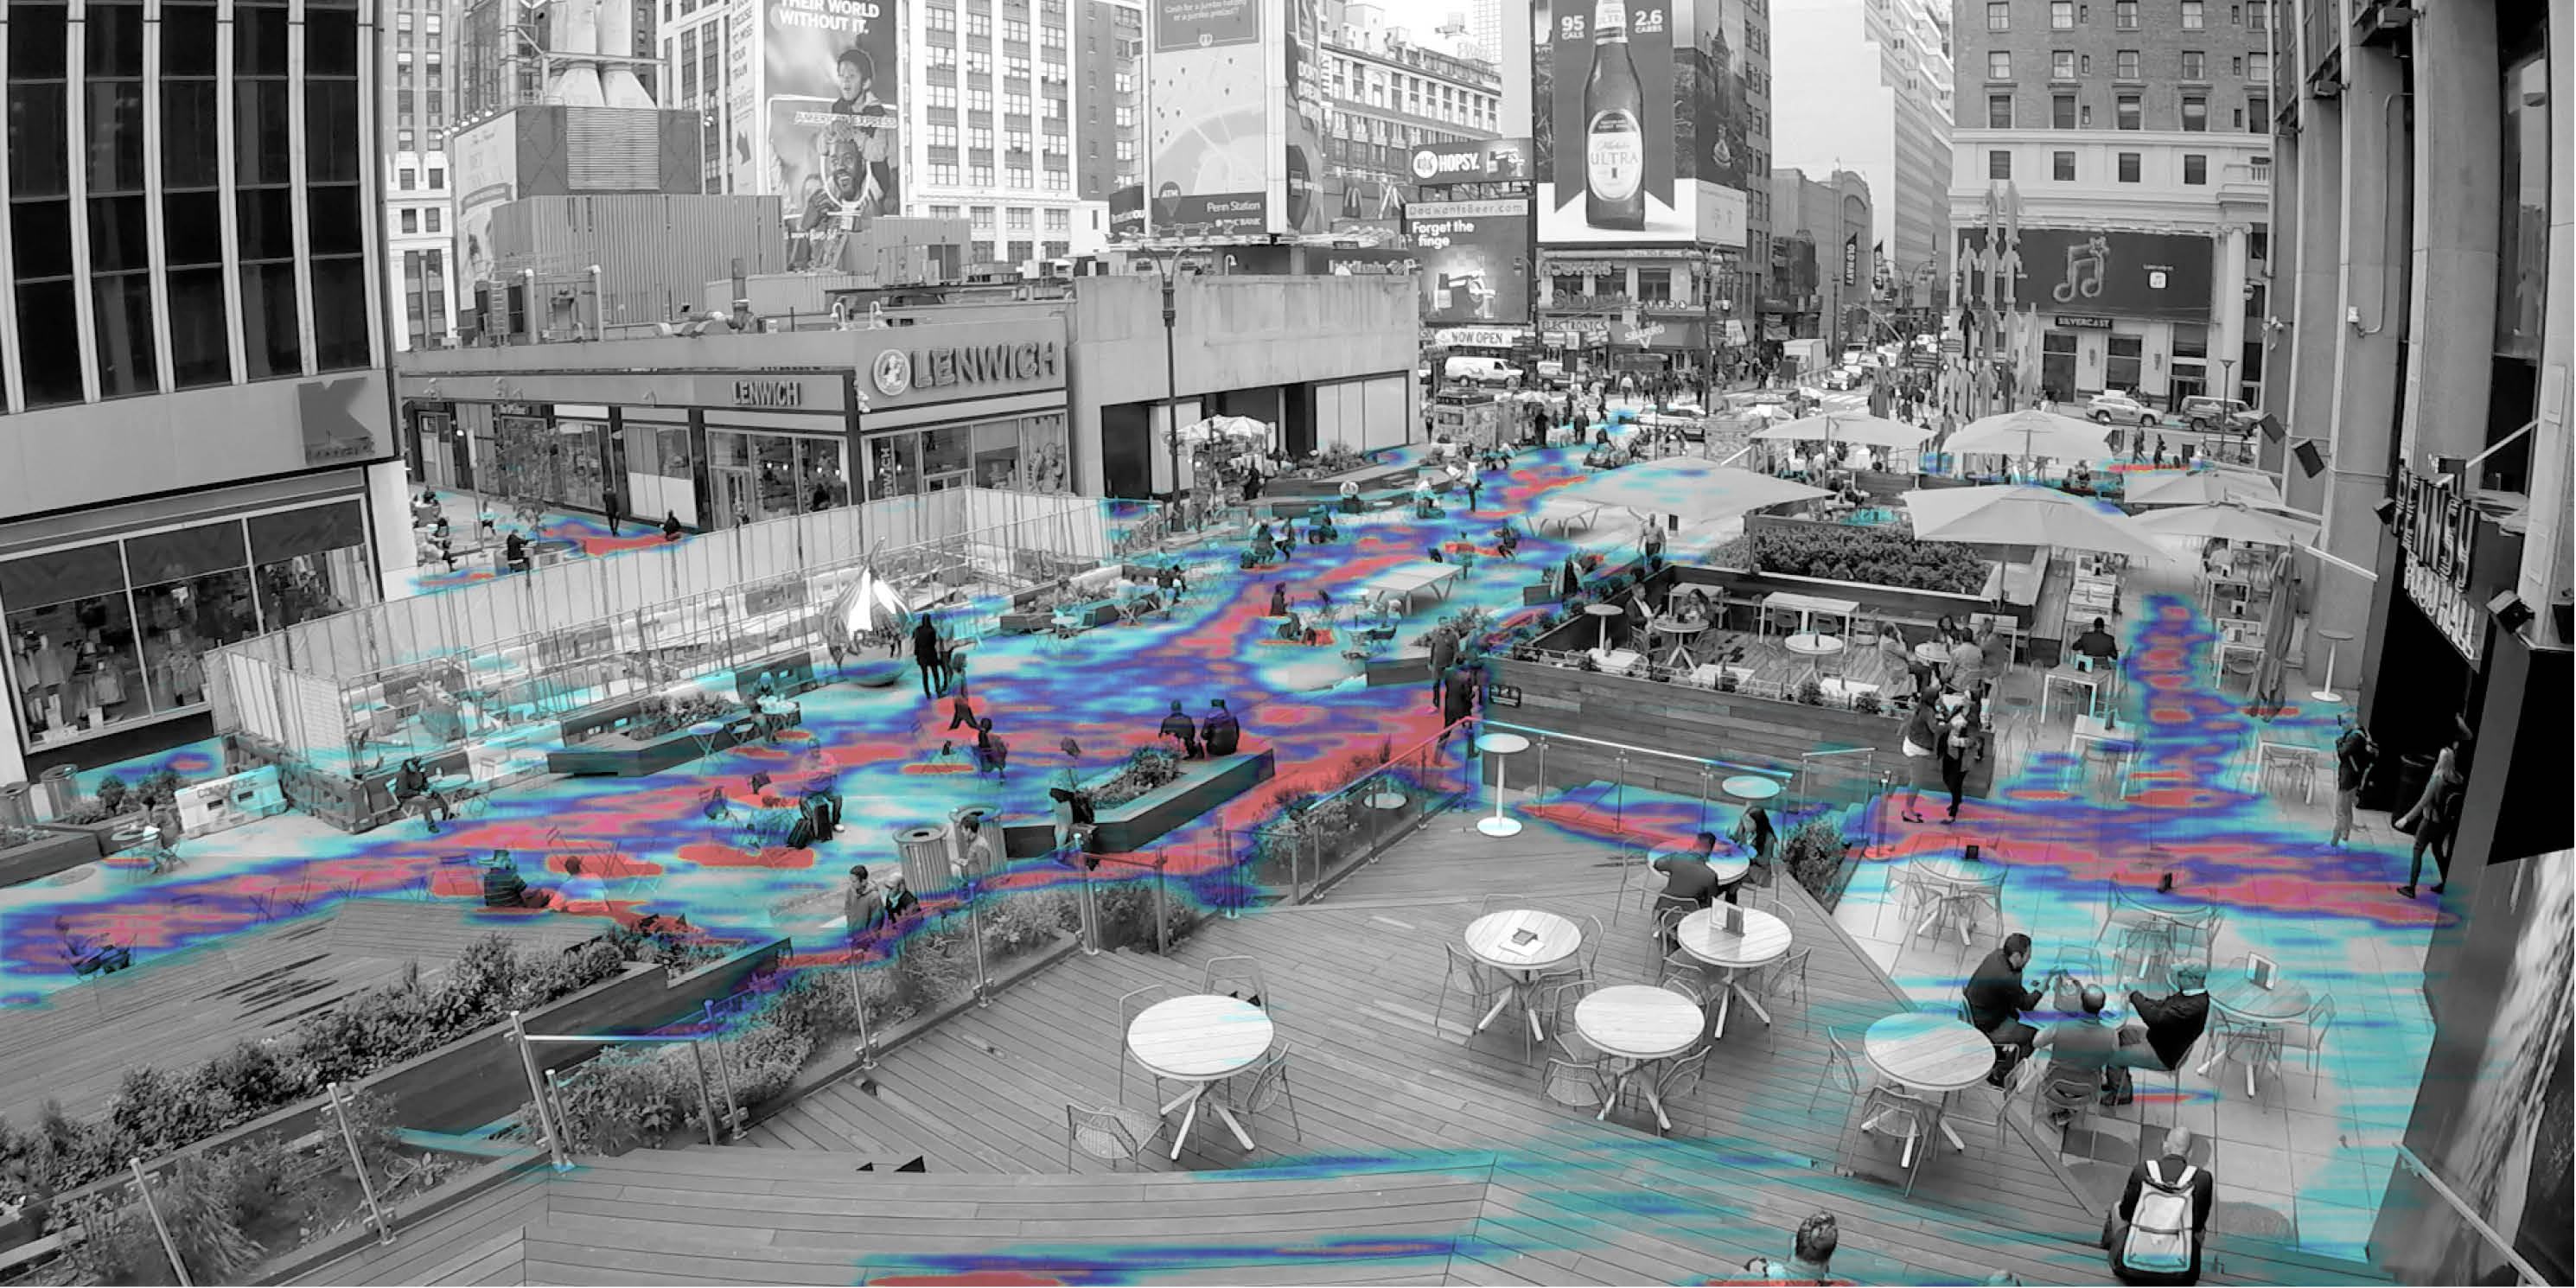 rendering of a pedestrian plaza